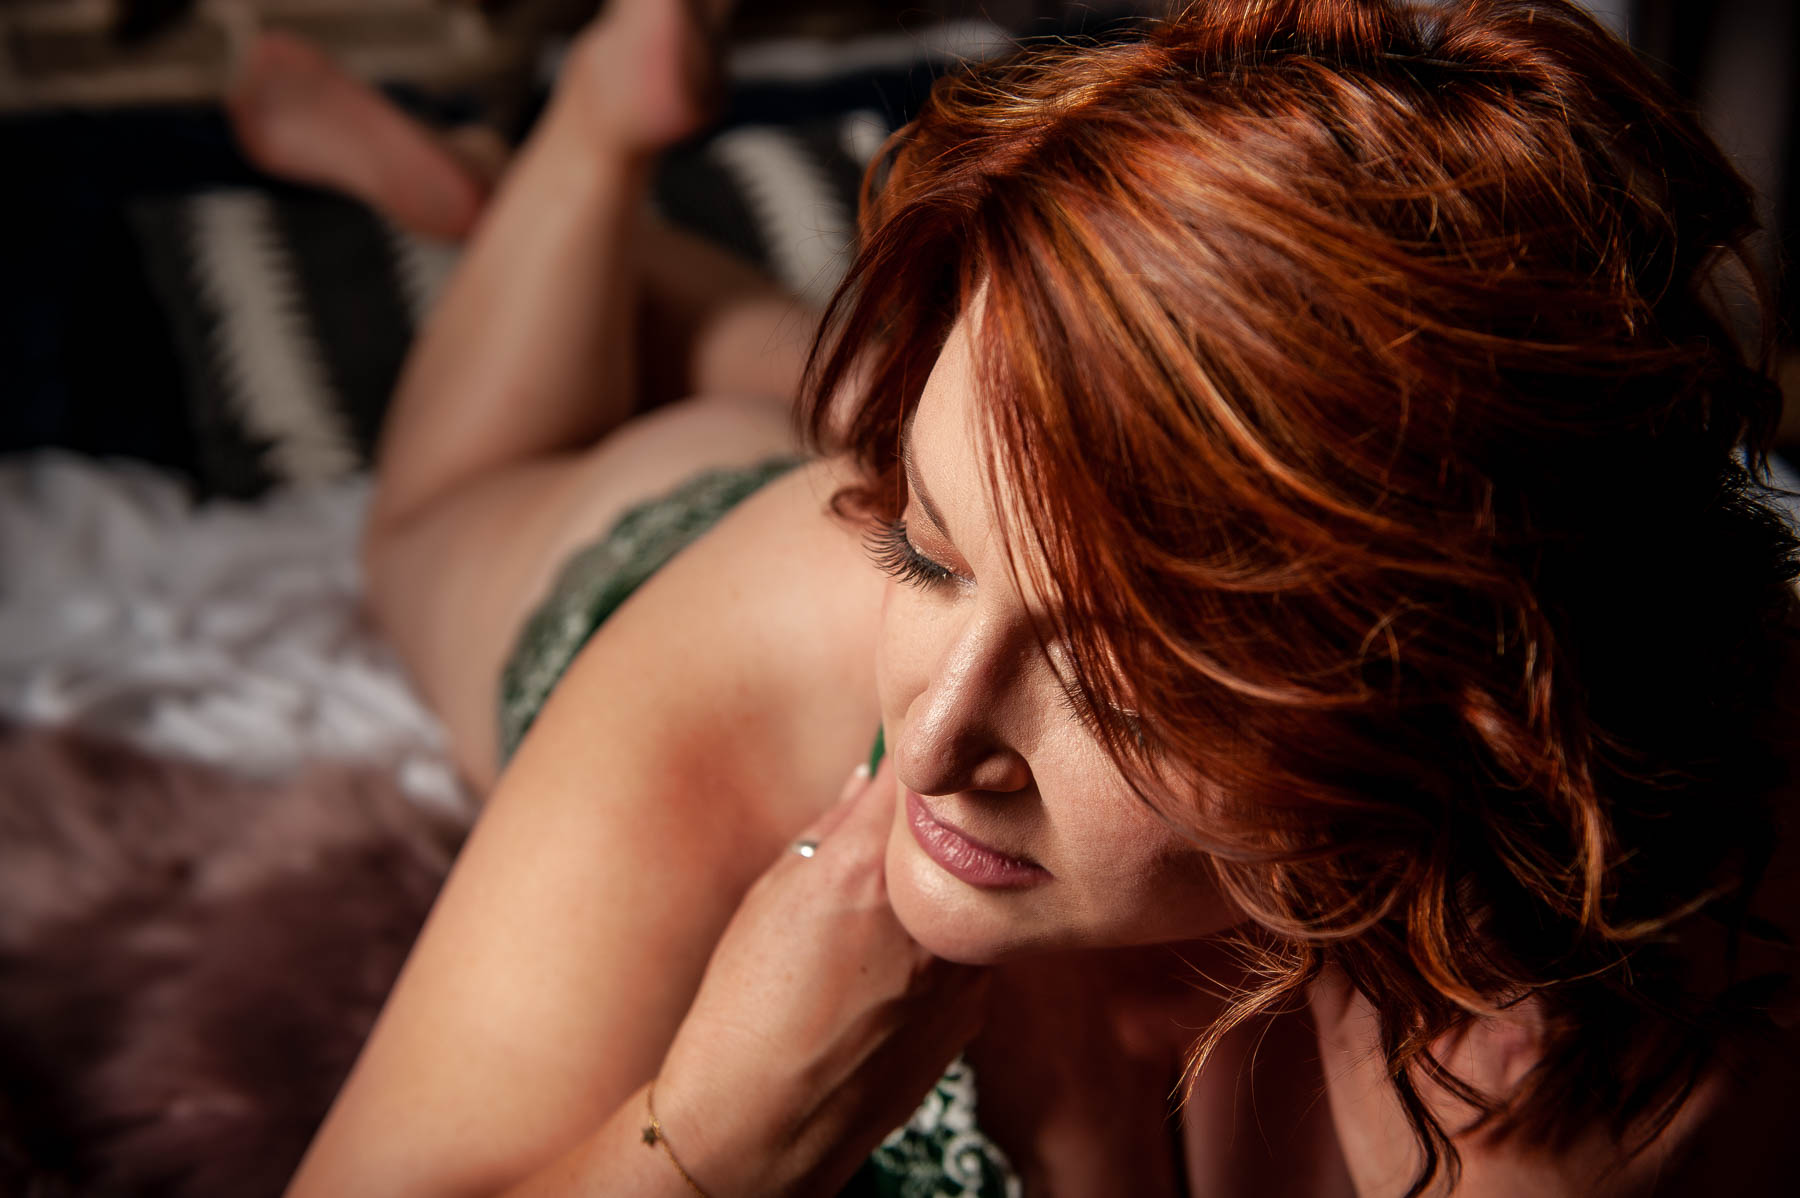 0010-SD-flagstaff-boudoir-photographer-DSC_1187-Edit-2019ther2studio